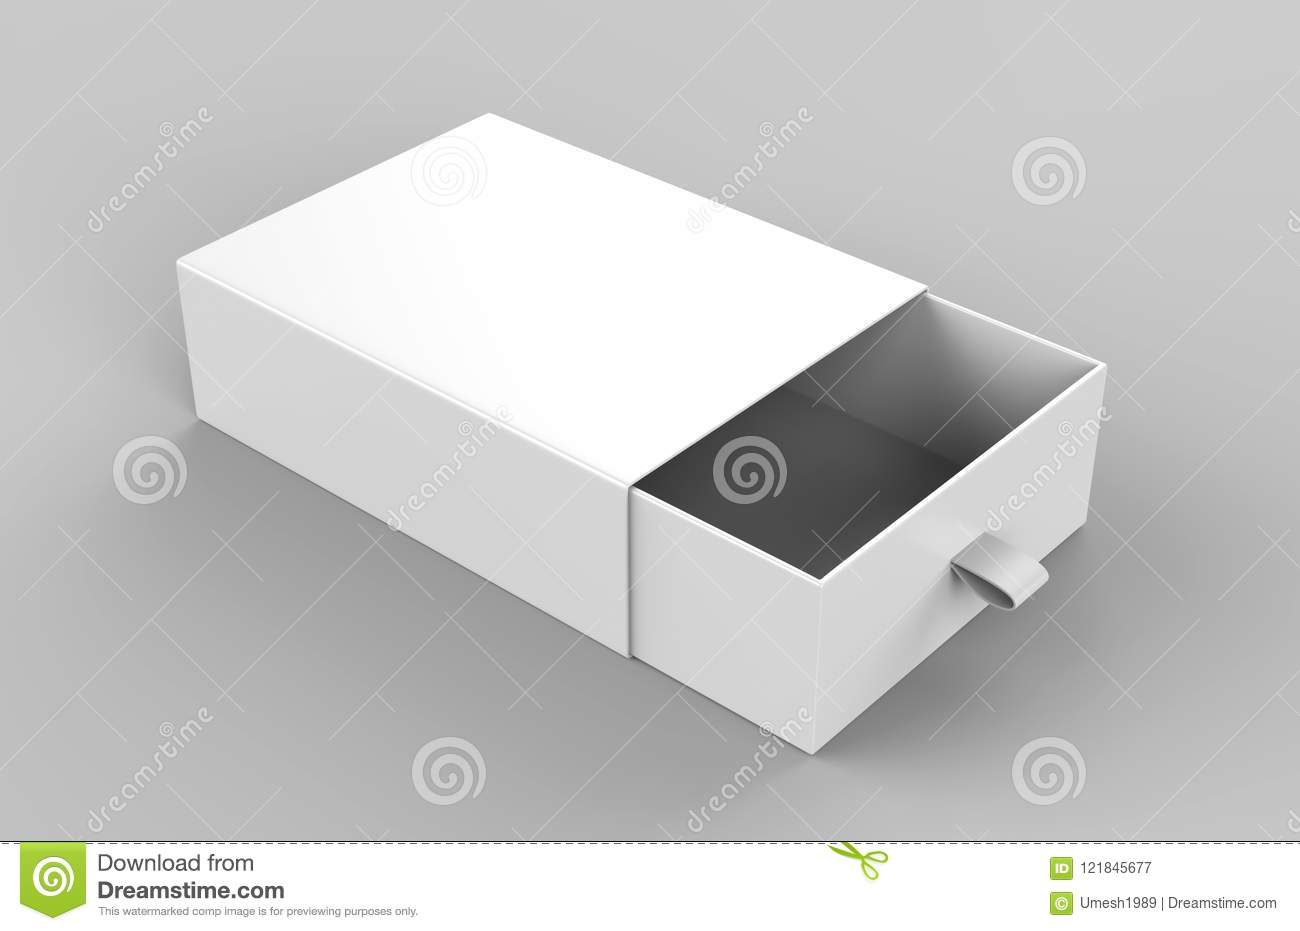 Realistic Package Cardboard Sliding Box On Grey Background For Small Items Matches And Other Things